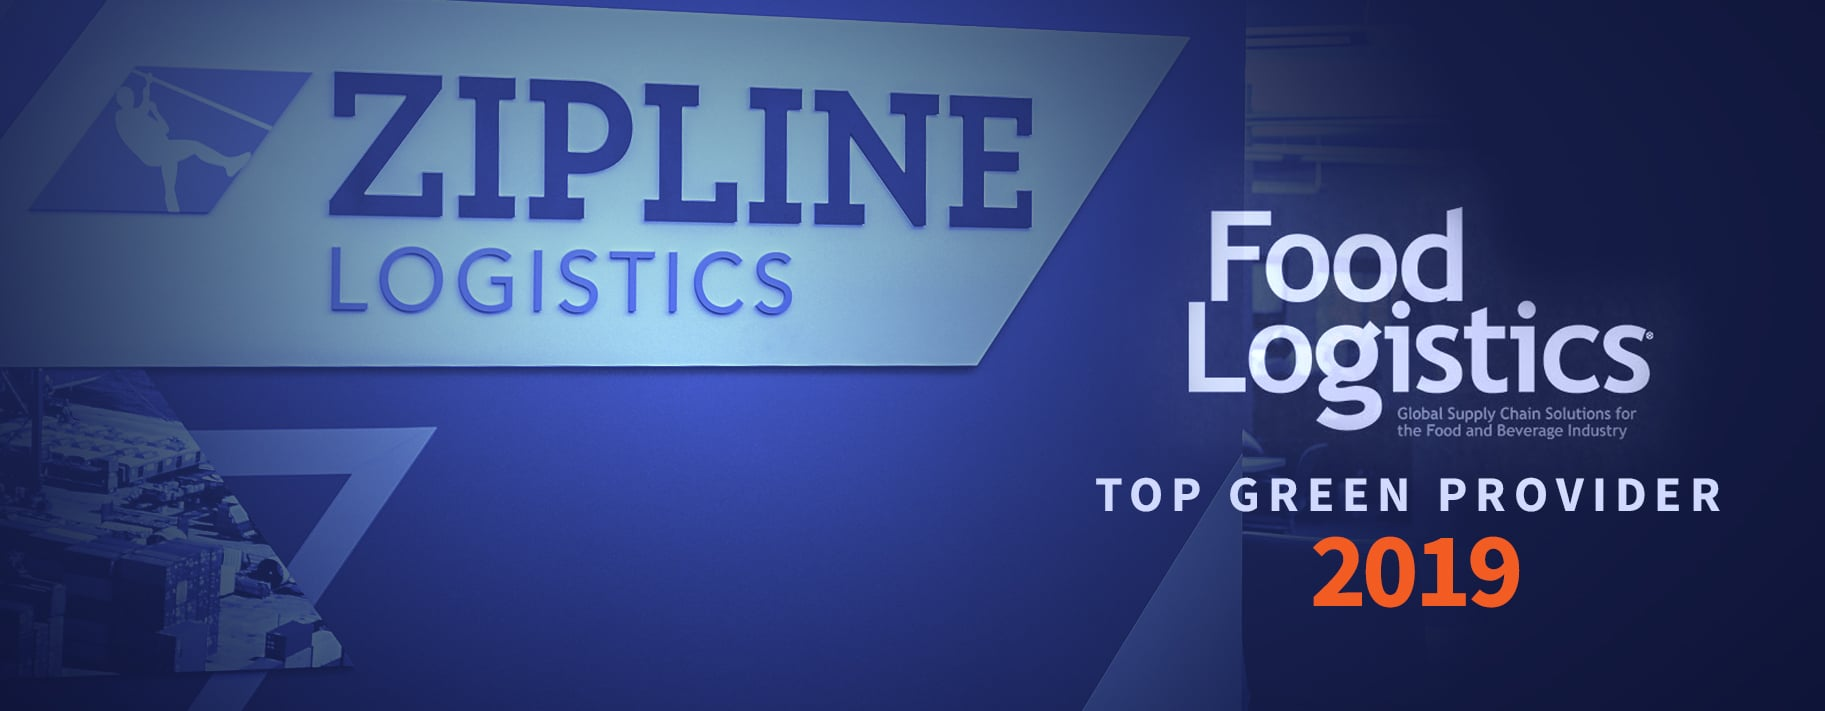 Zipline Logistics Awarded as 2019 Top Green Provider